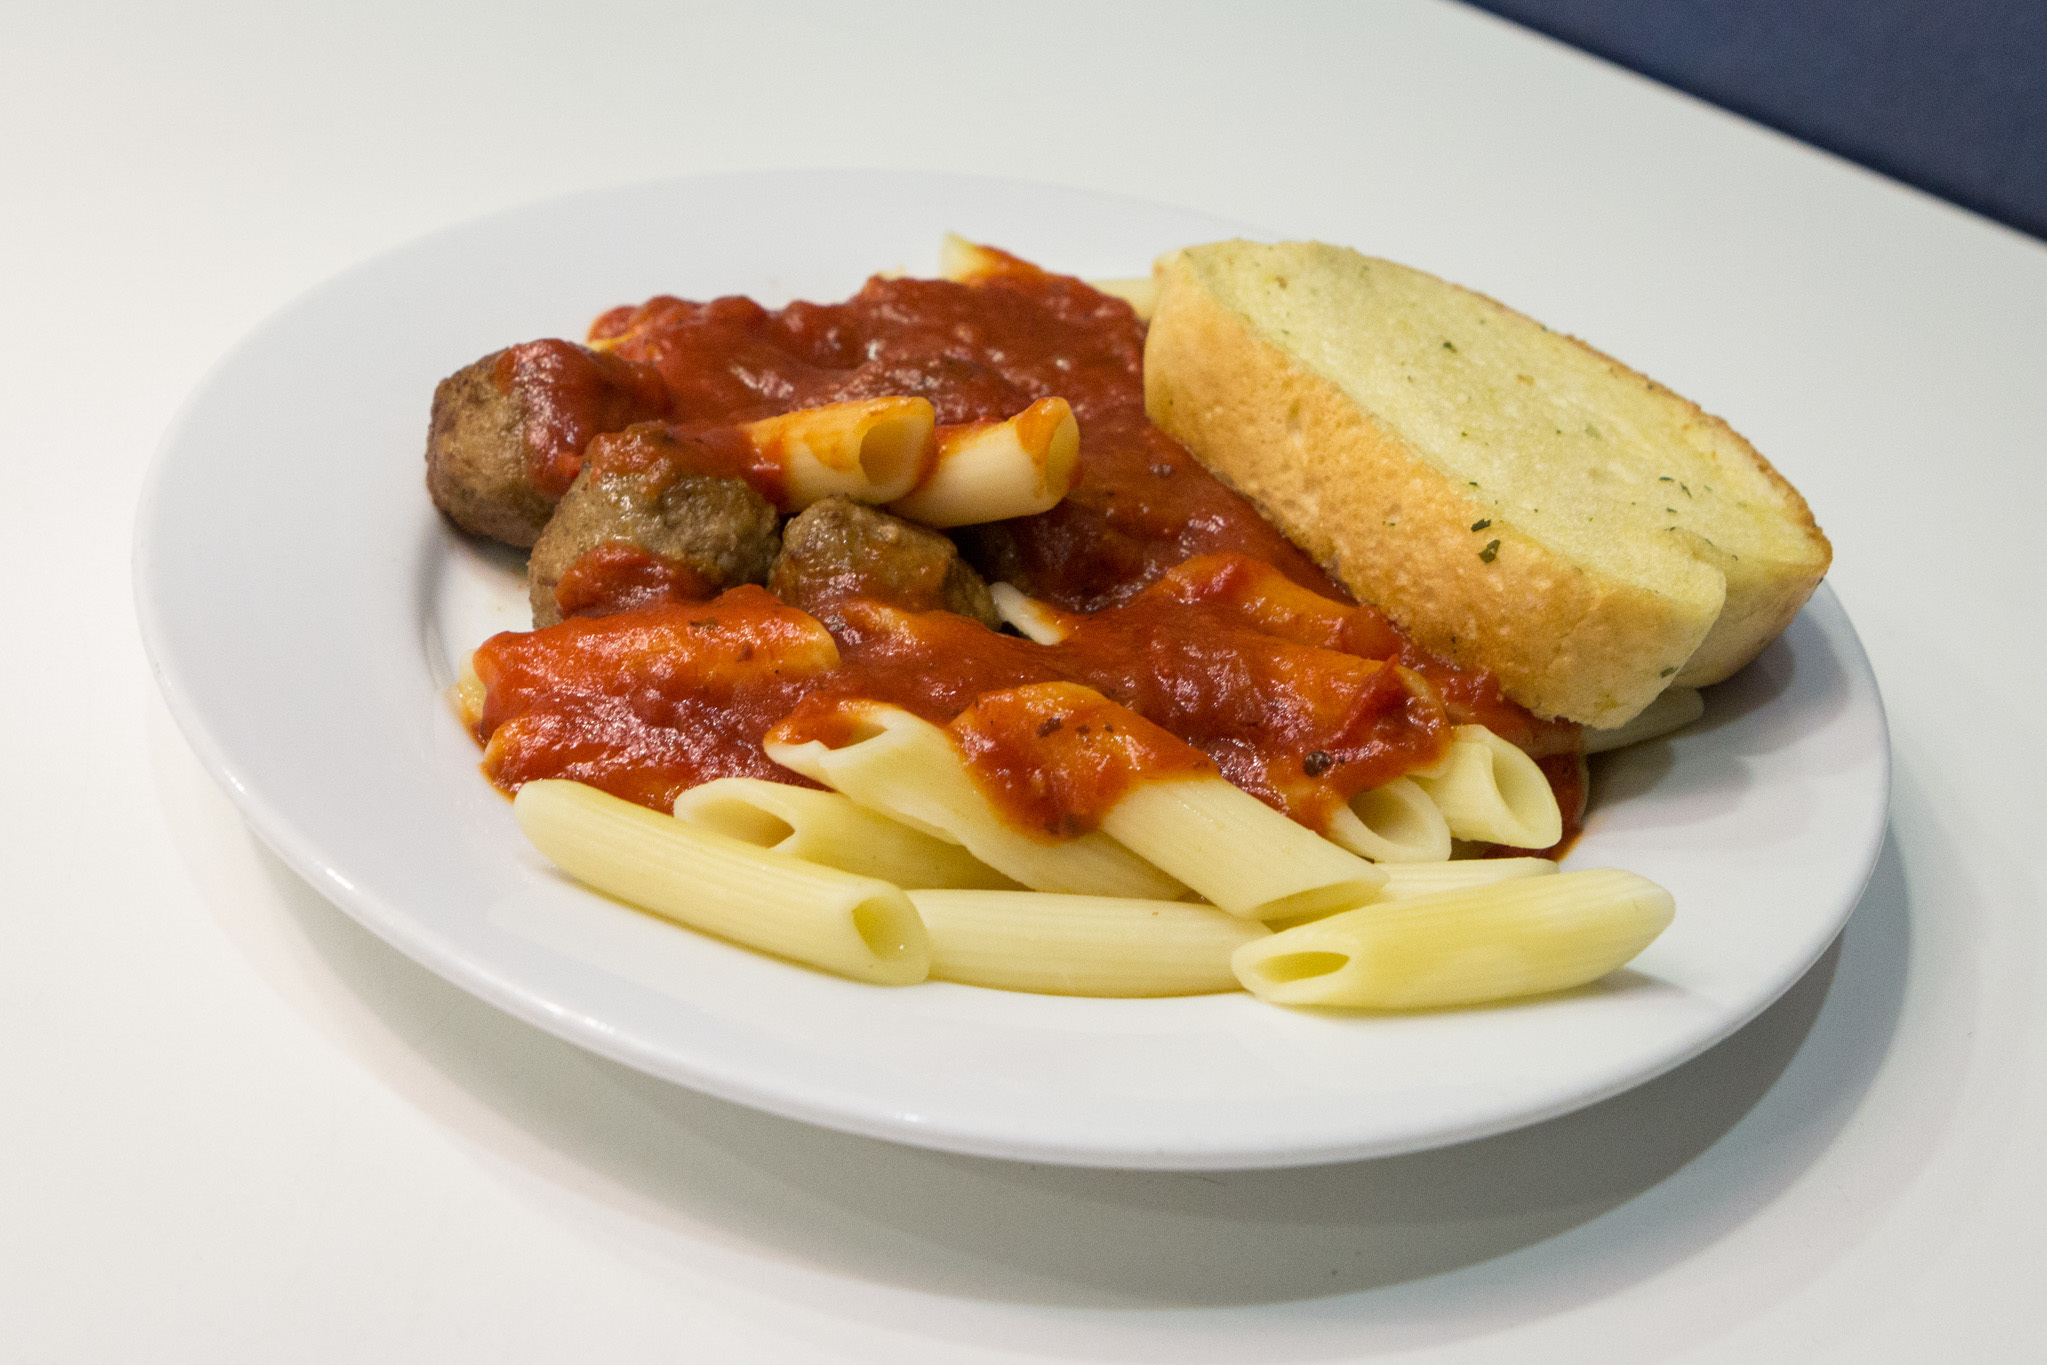 Pasta with meatballs and garlic bread at IKEA Burbank